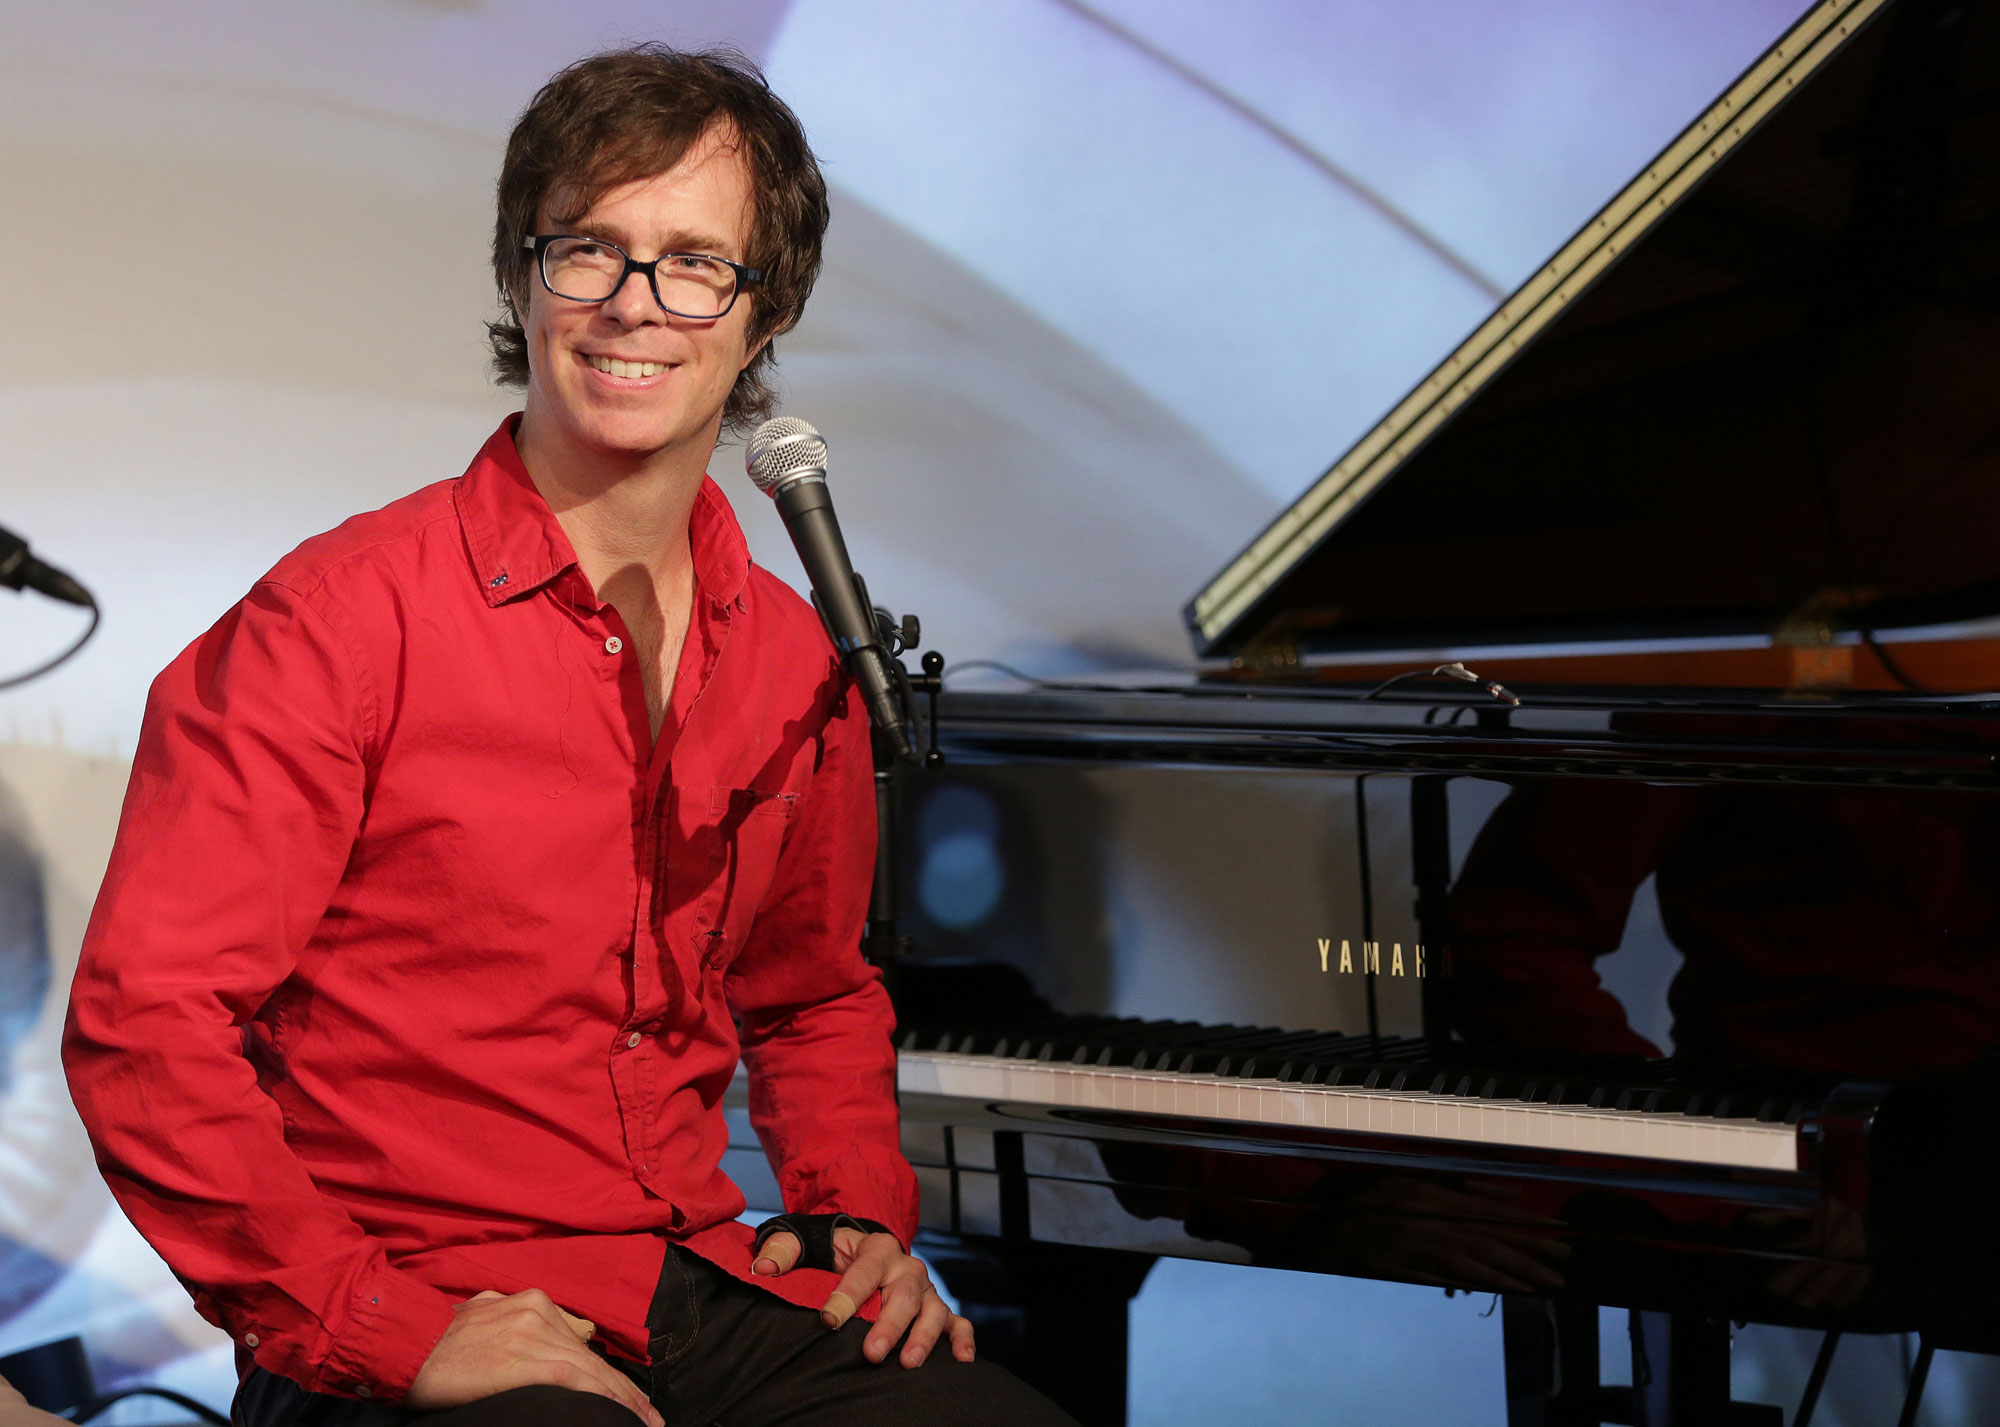 YoungArts Salon Featuring Singer-Songwriter Ben Folds, Moderated By Shelly Berg And Sponsored By Knight Foundation